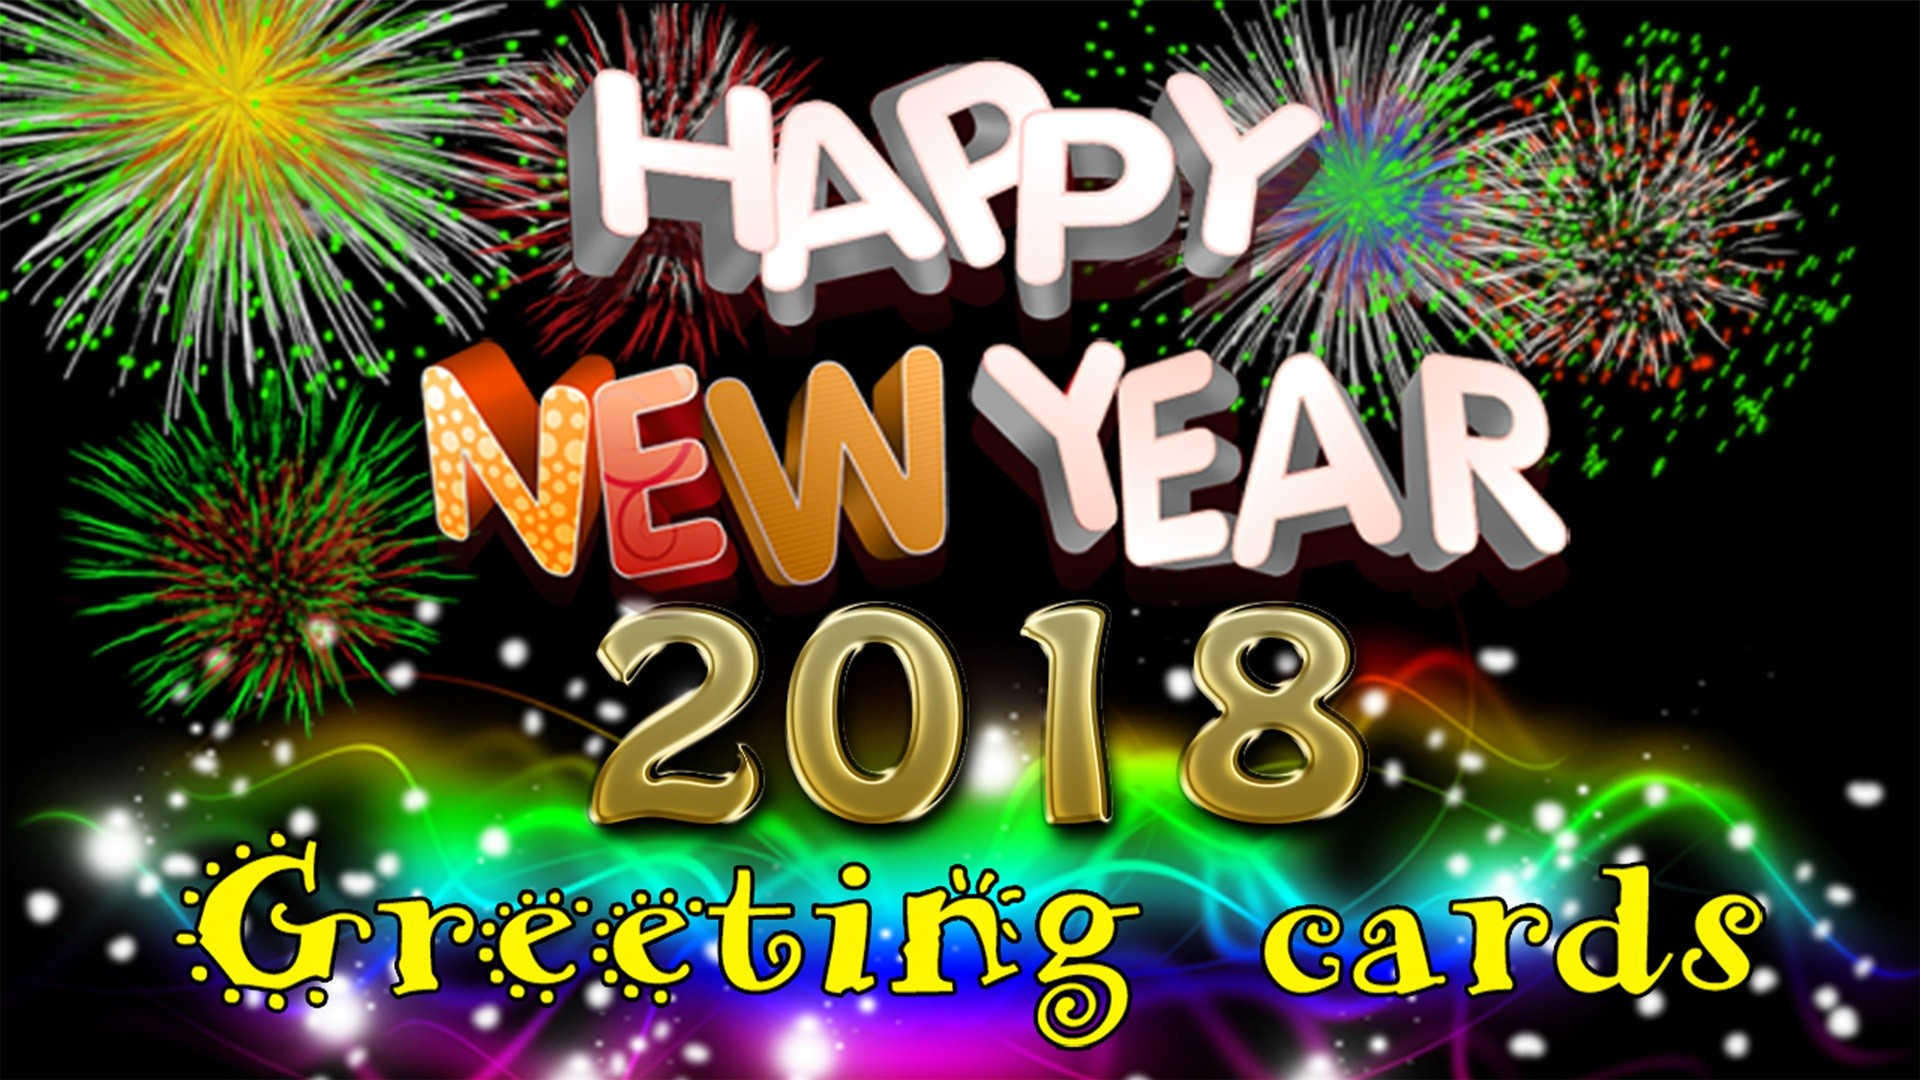 1920x1080 new years desktop backgrounds happy new year 2018 greetings cards desktop wallpaper hd for